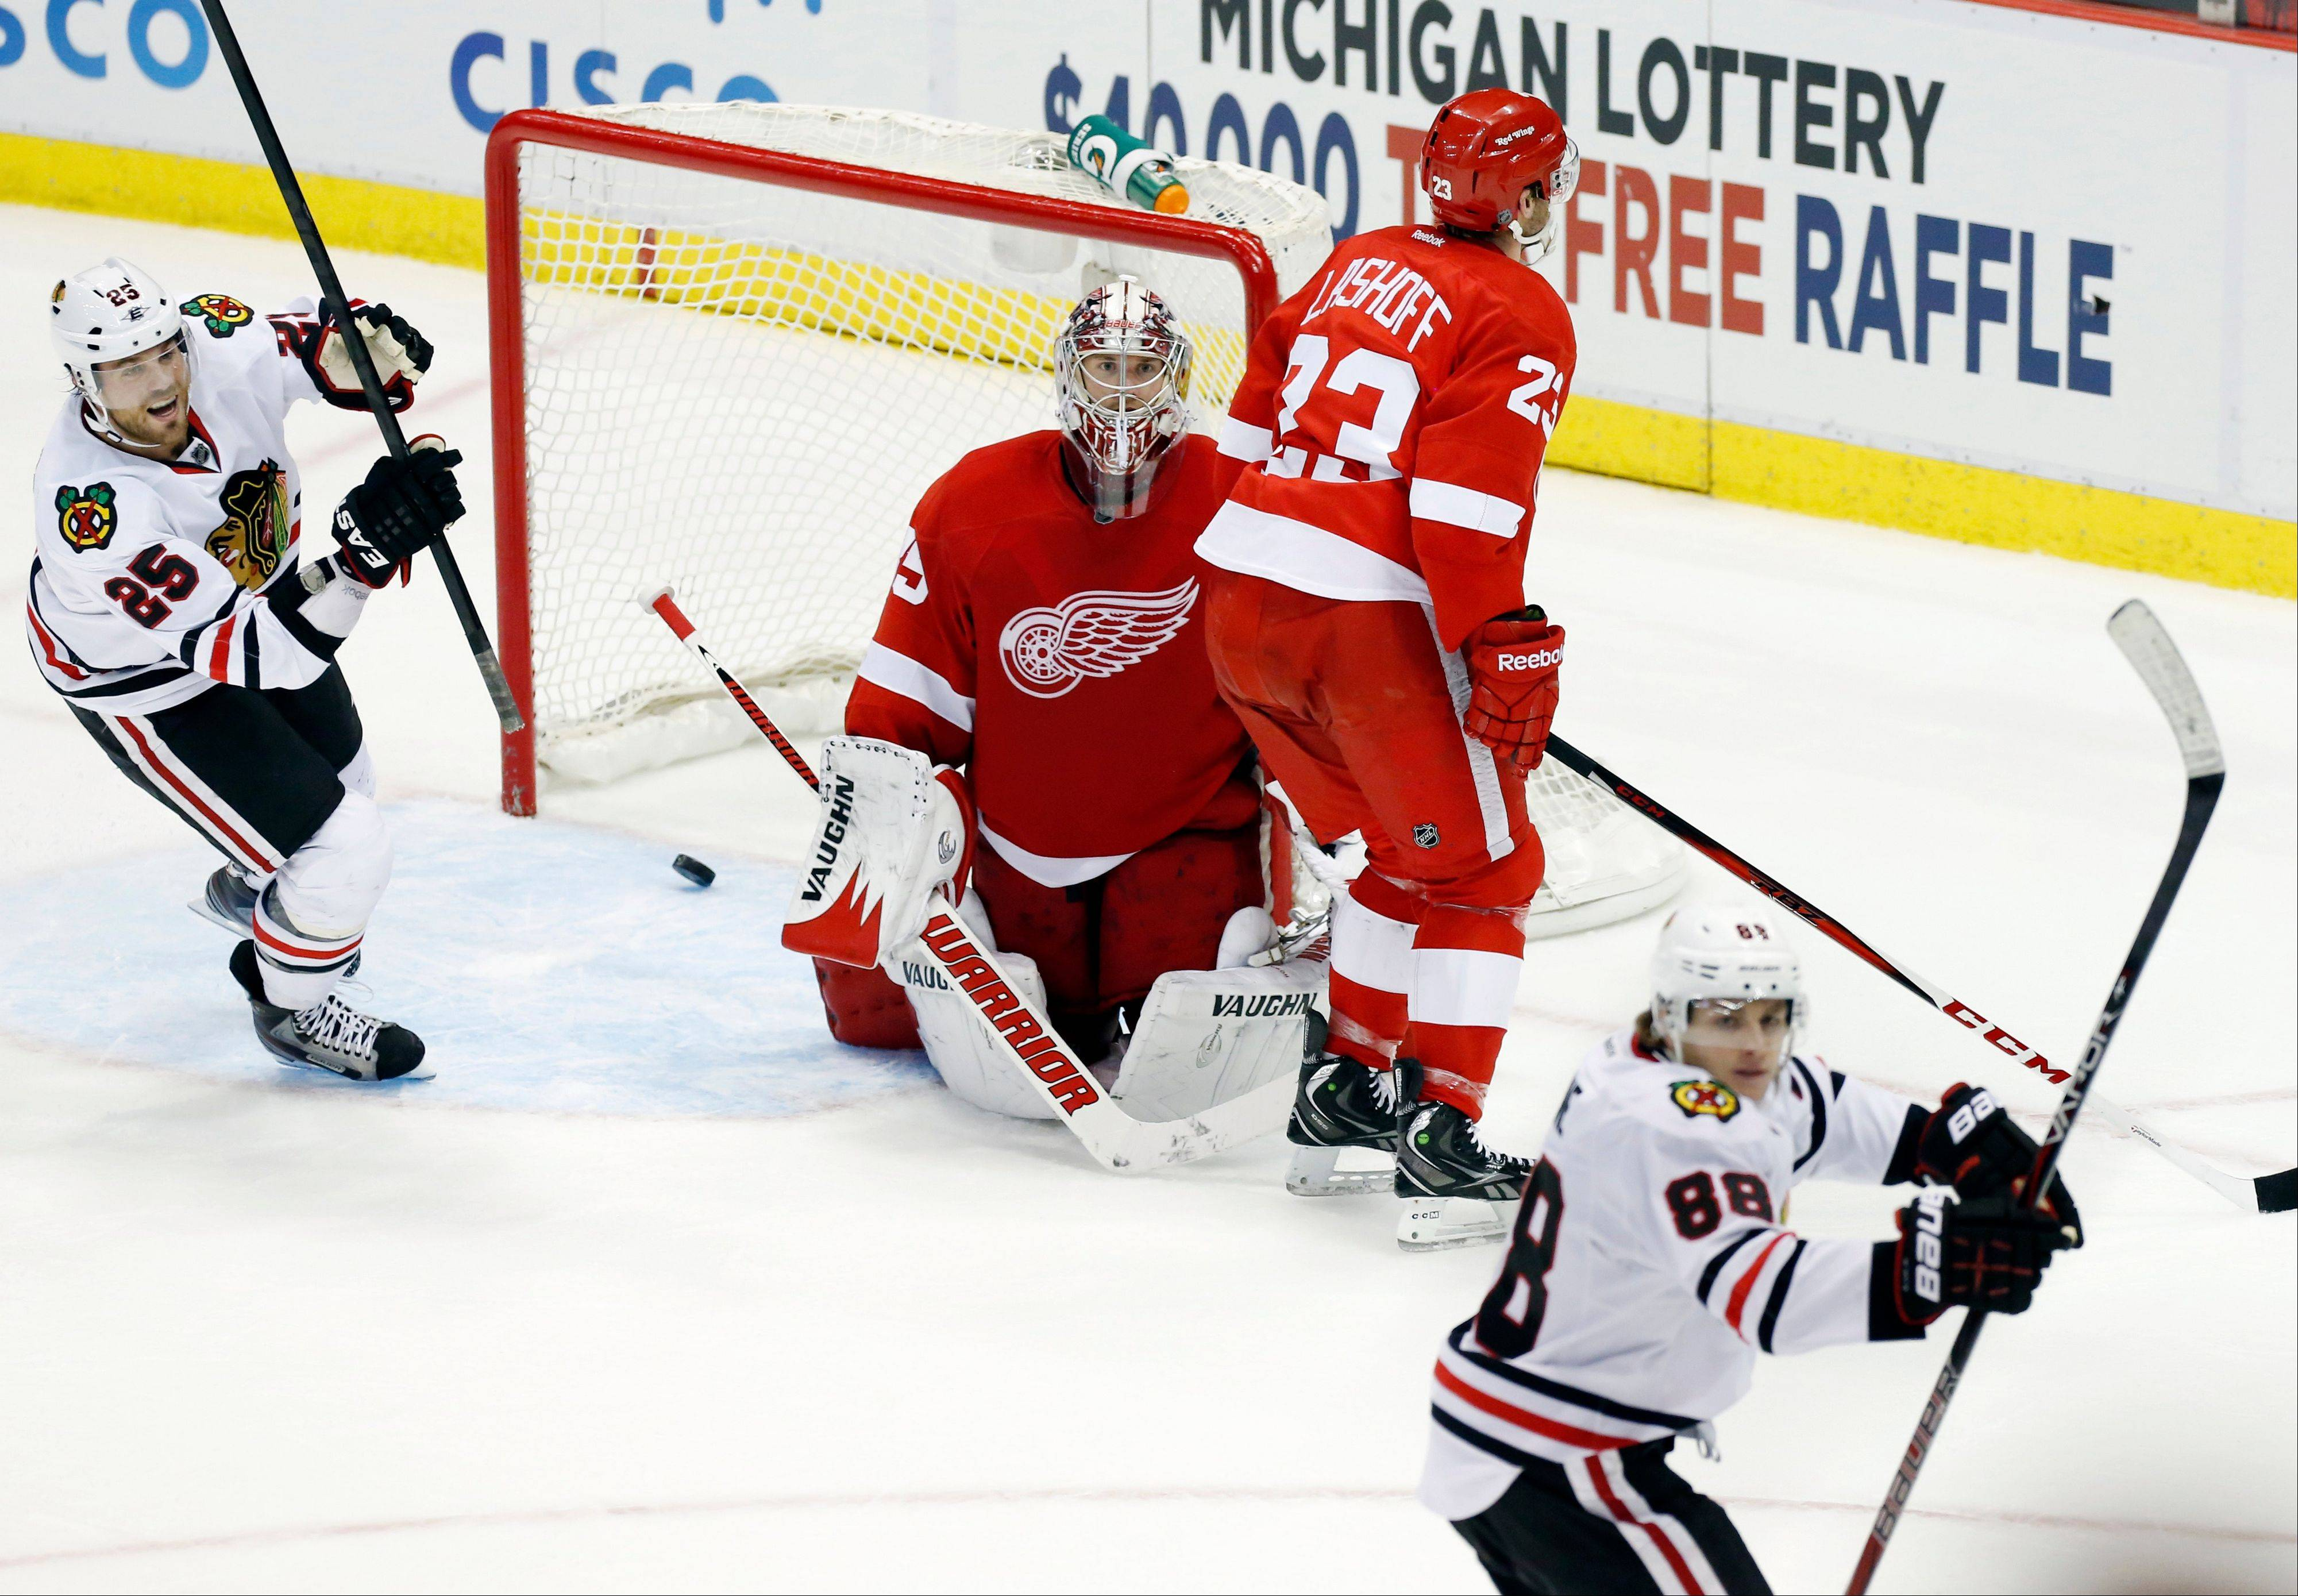 Viktor Stalberg celebrates a goal by Blackhawks right wing Patrick Kane against Red Wings goalie Jimmy Howard, center, and defenseman Brian Lashoff (23) that tied the game at 1-1 with just 2:03 remaining.